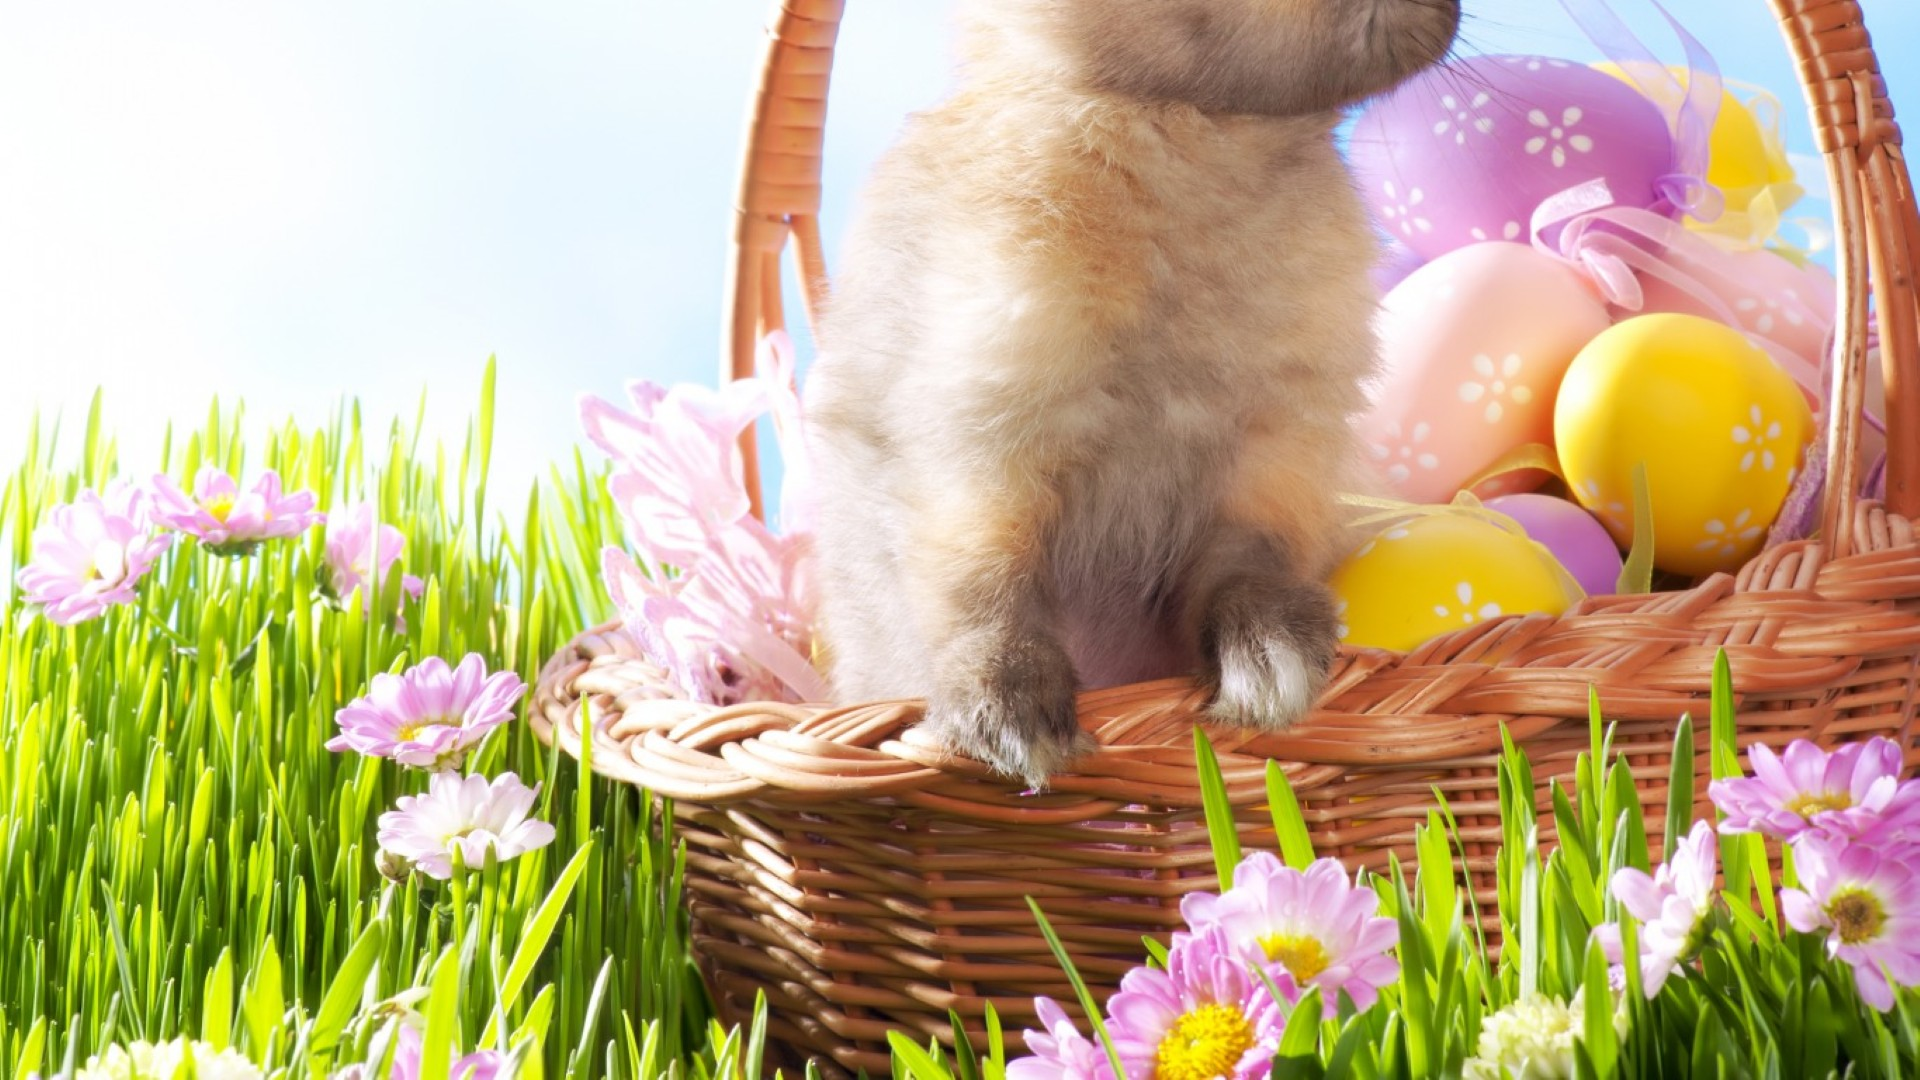 Easter Wallpaper HD for your Desktop 1920x1080